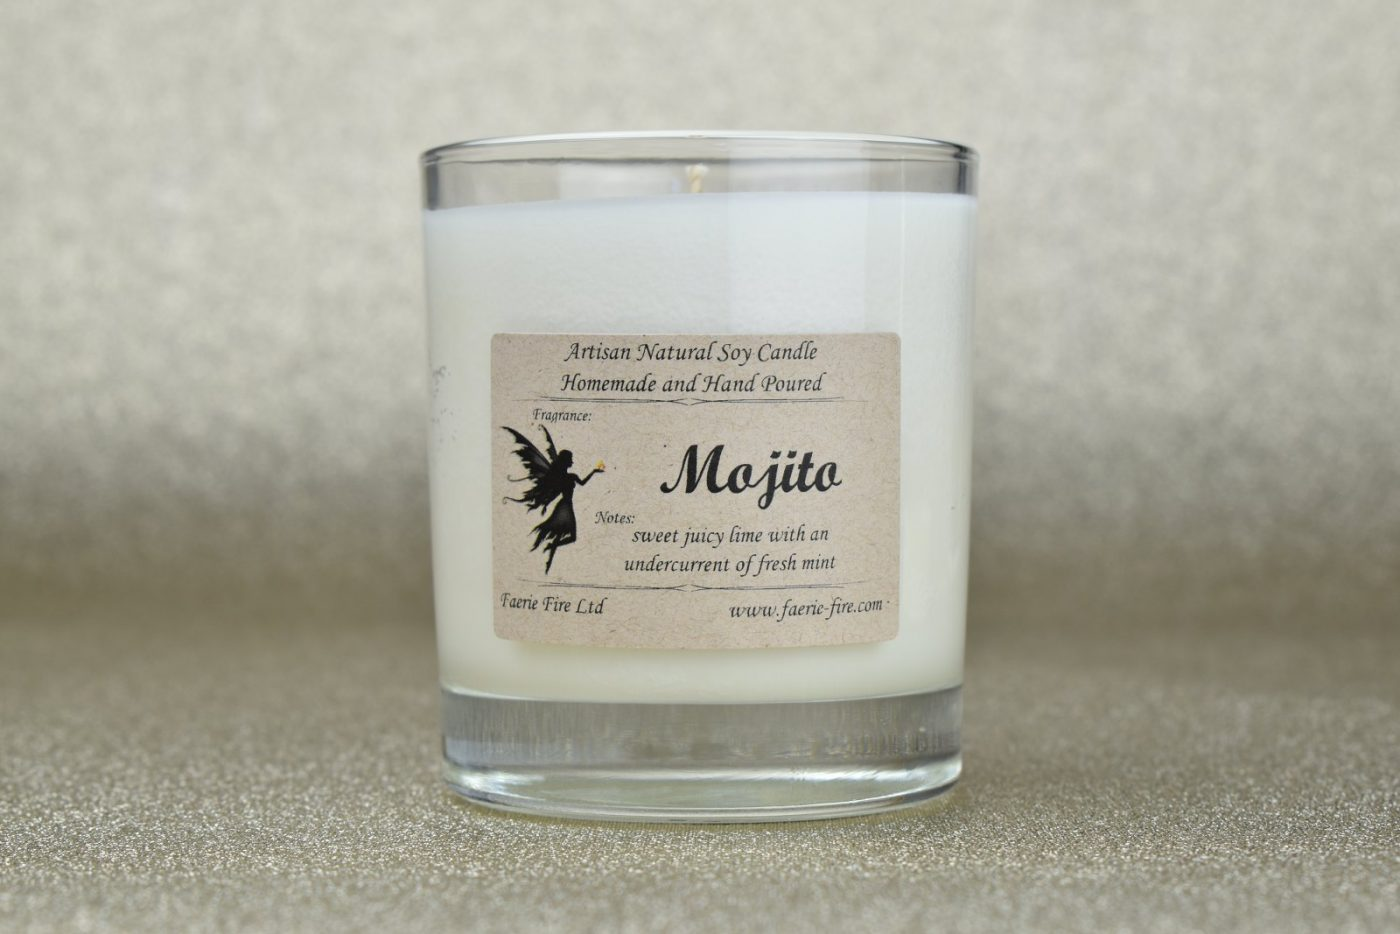 White soy Mojito candle in a clear glass smilling like lime and mint against a pale gold background